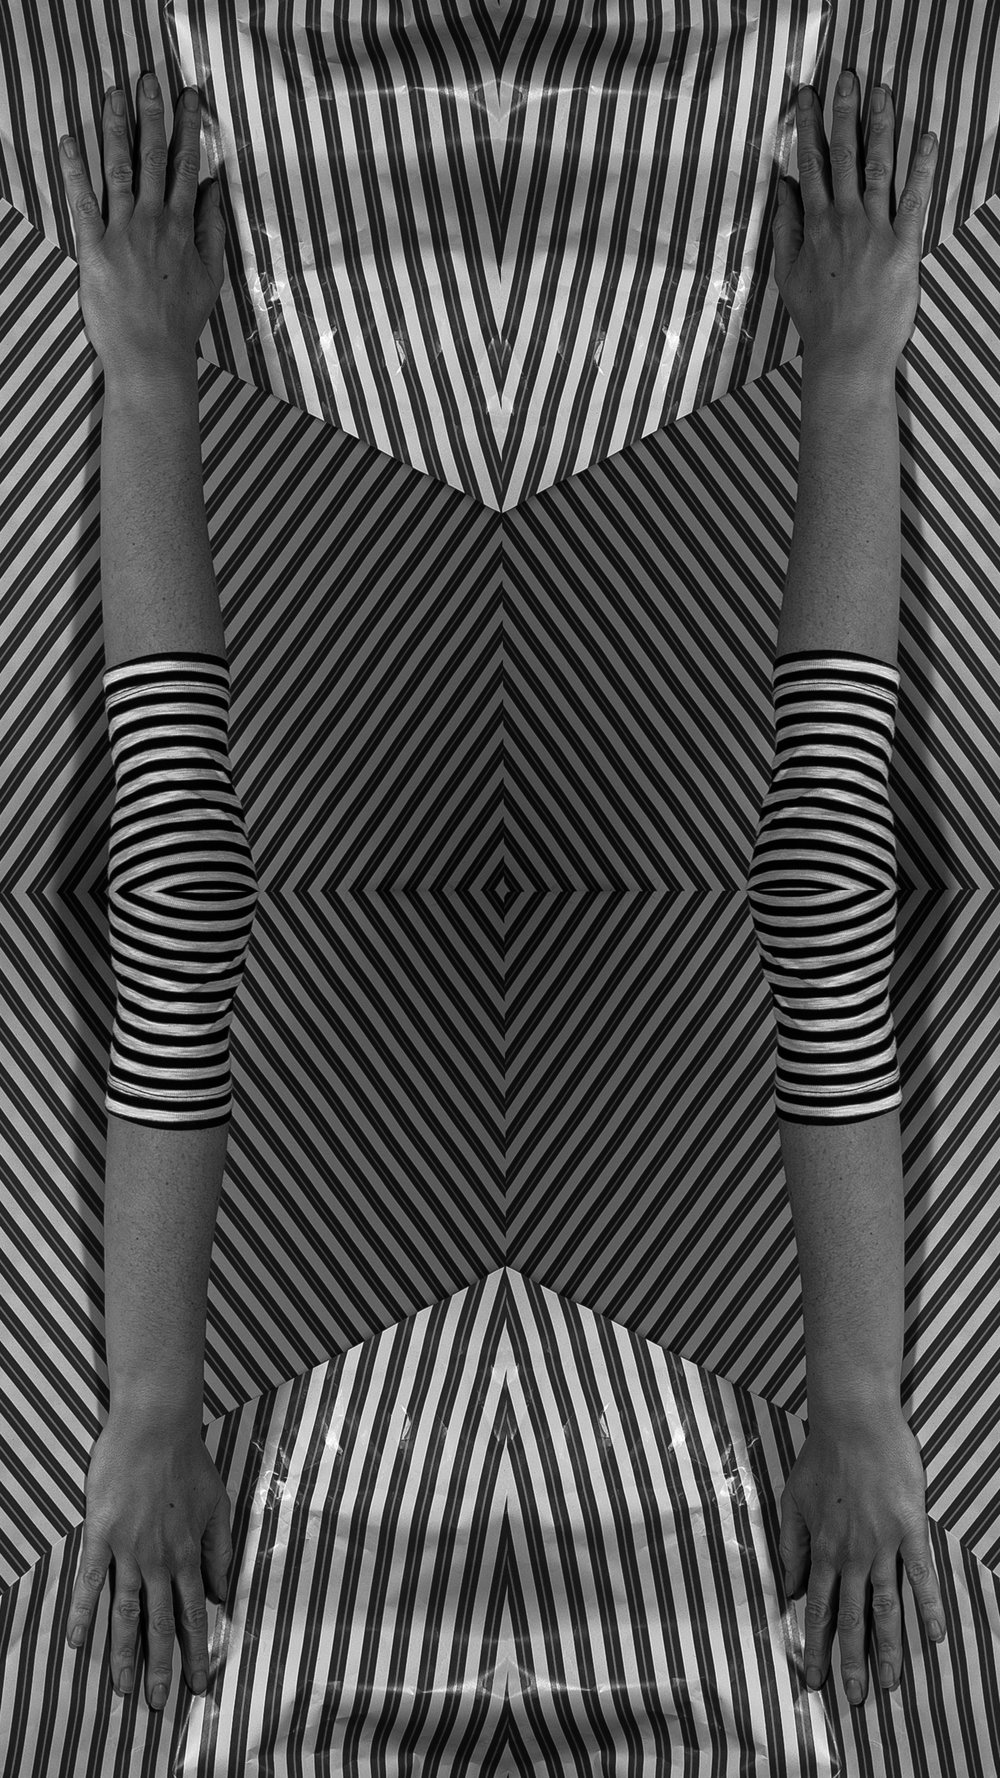 Illusion No. 2 from Mind Loop, 15 by 25 inches, Archival Pigment Print, 2018